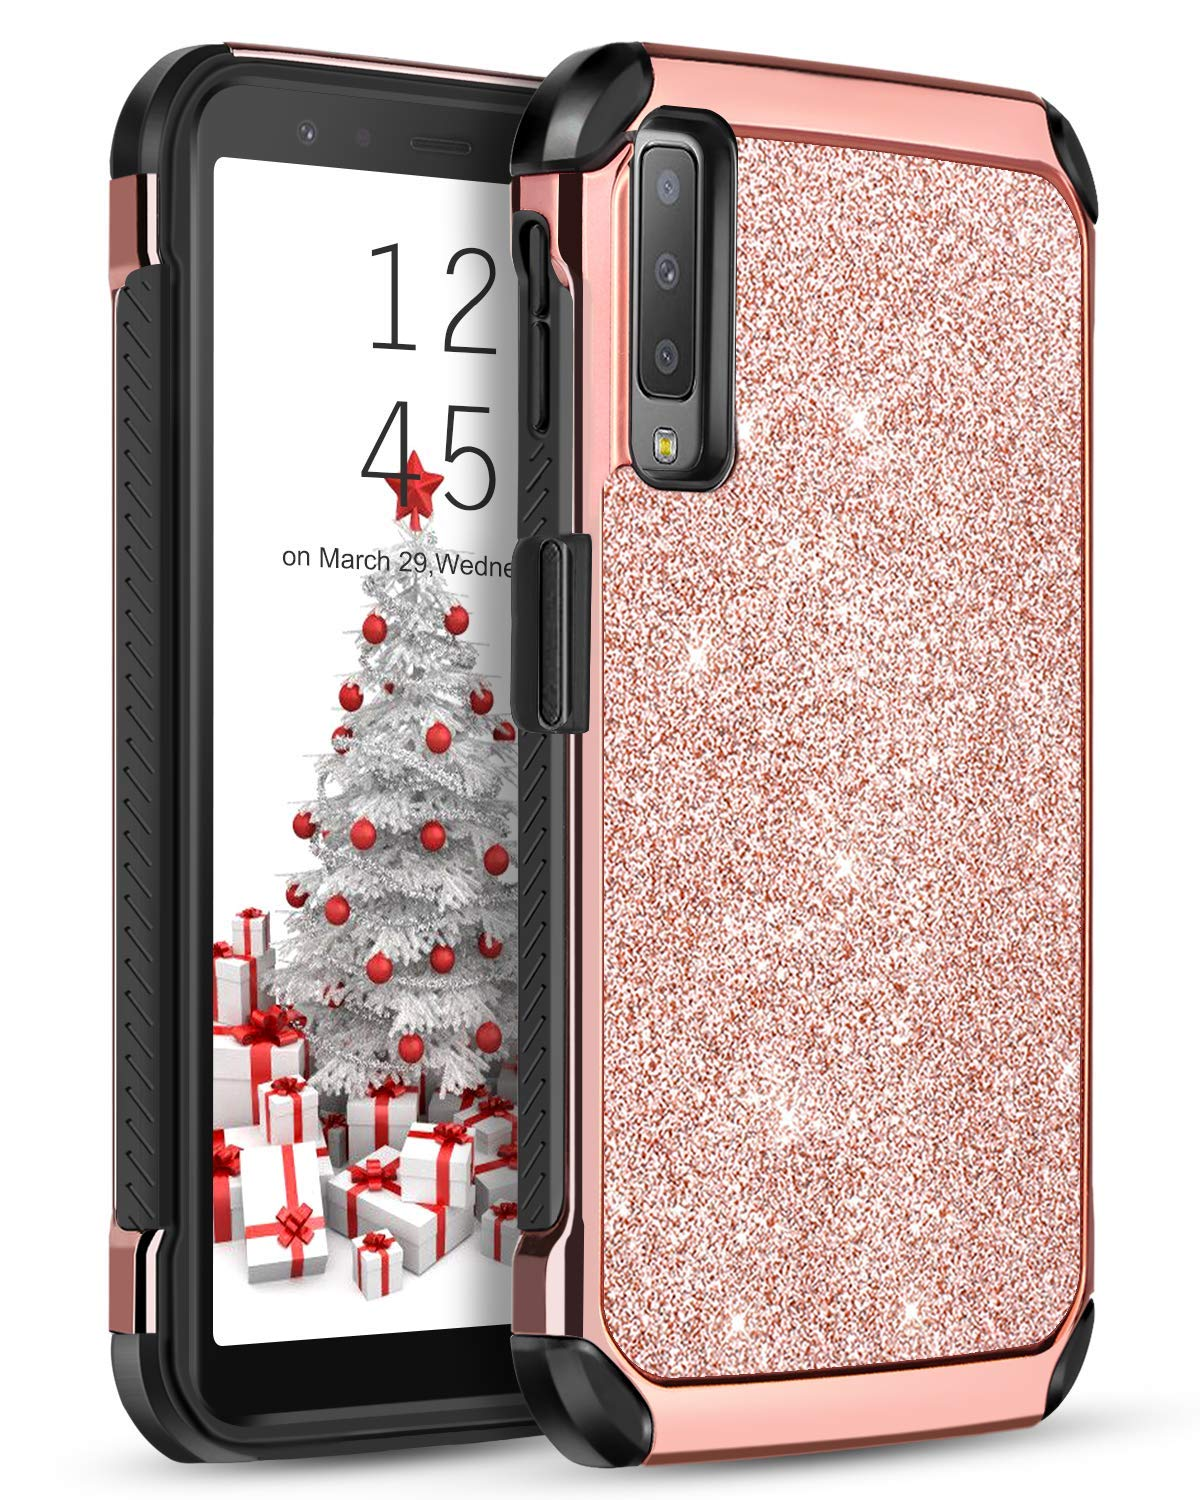 Samsung Galaxy A7 2018 Case, YINLAI Glitter Bling 2 in 1 Slim Hybrid Soft TPU Bumper Hard PC Cover with Shiny PU Leather Shockproof Protective Phone Cases for Samsung Galaxy A7 2018 SM-A750 Rose Gold